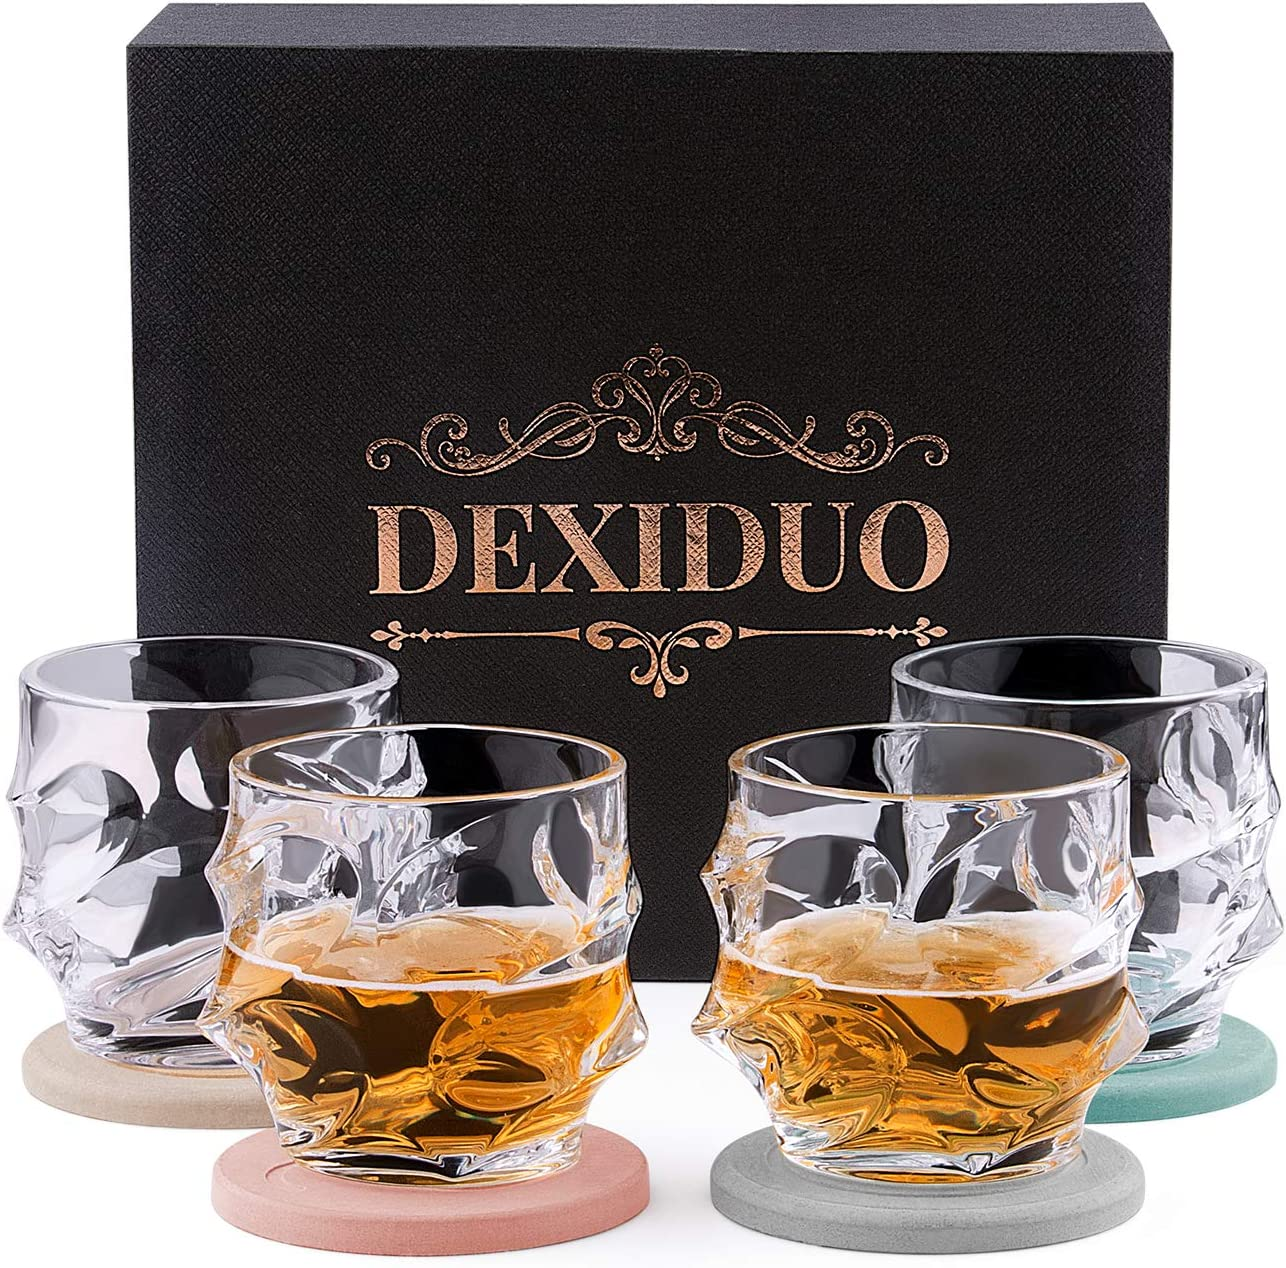 DEXIDUO Crystal Whiskey Glasses with Luxury Box and 4 Drink Coasters, Whiskey Decanter Set for Bourbon, Scotch Whisky, Cocktails, Cognac - Old Fashioned Cocktail Tumblers (Style B)